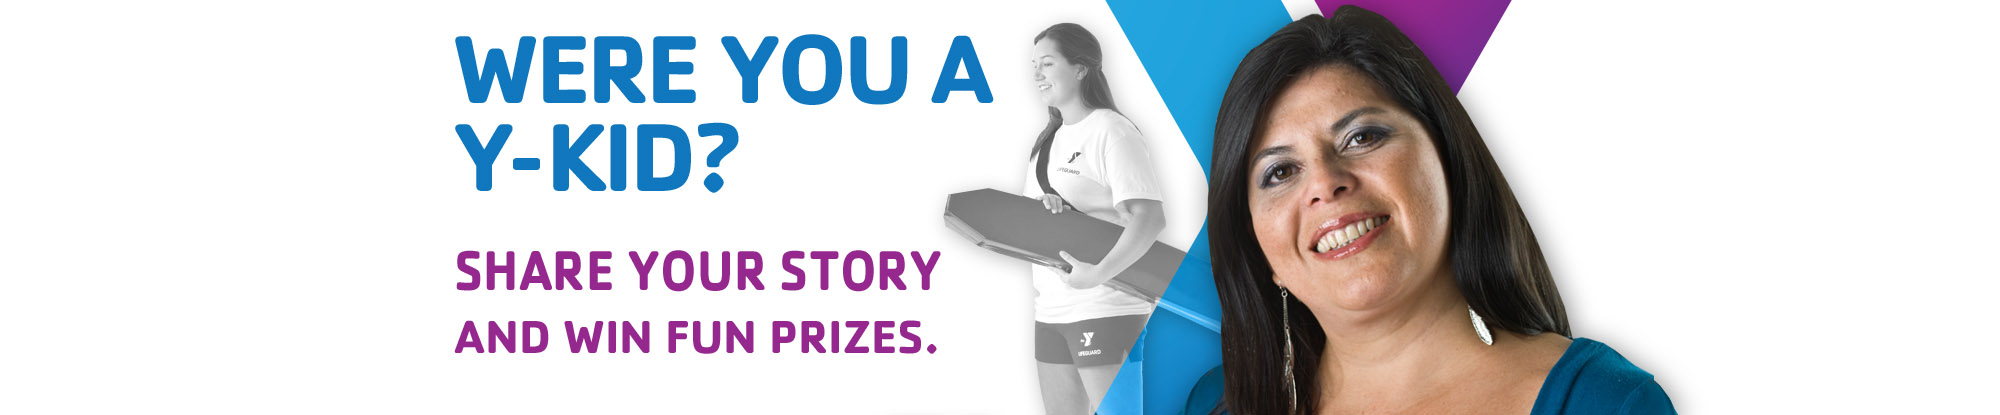 Were You a Y Kid? Share your story and win fun prizes!